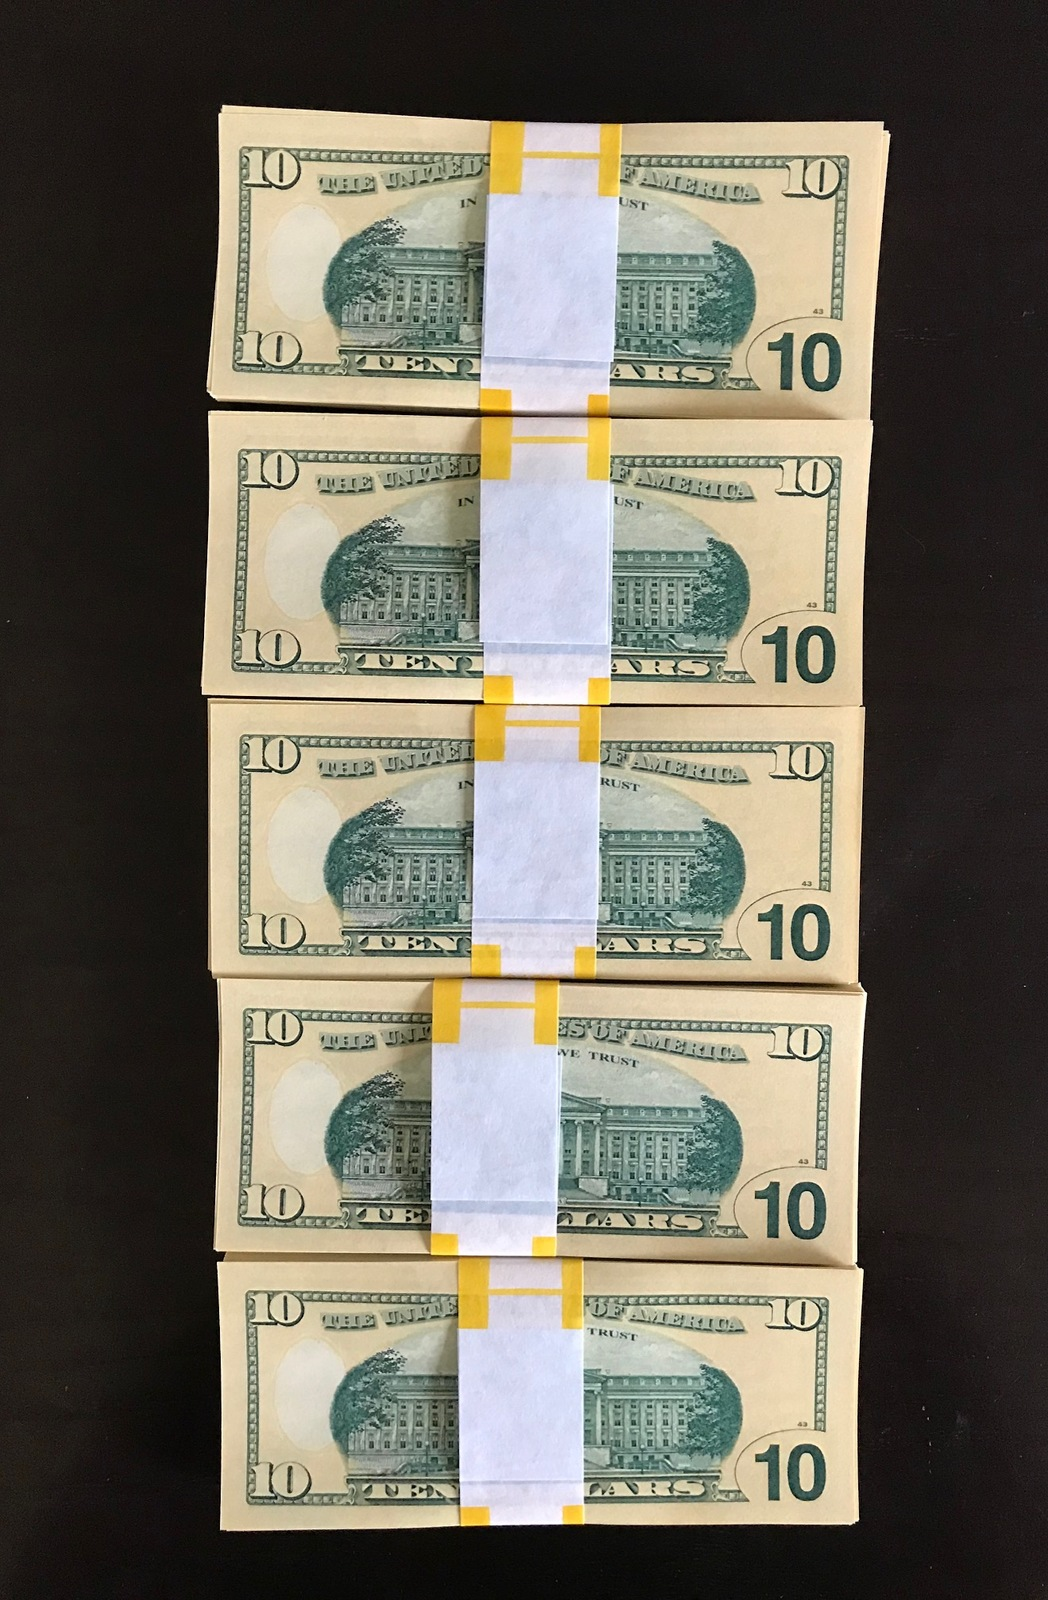 1.000 PROP MONEY REPLICA 10s All Full Print For Movie Video Films etc. image 5